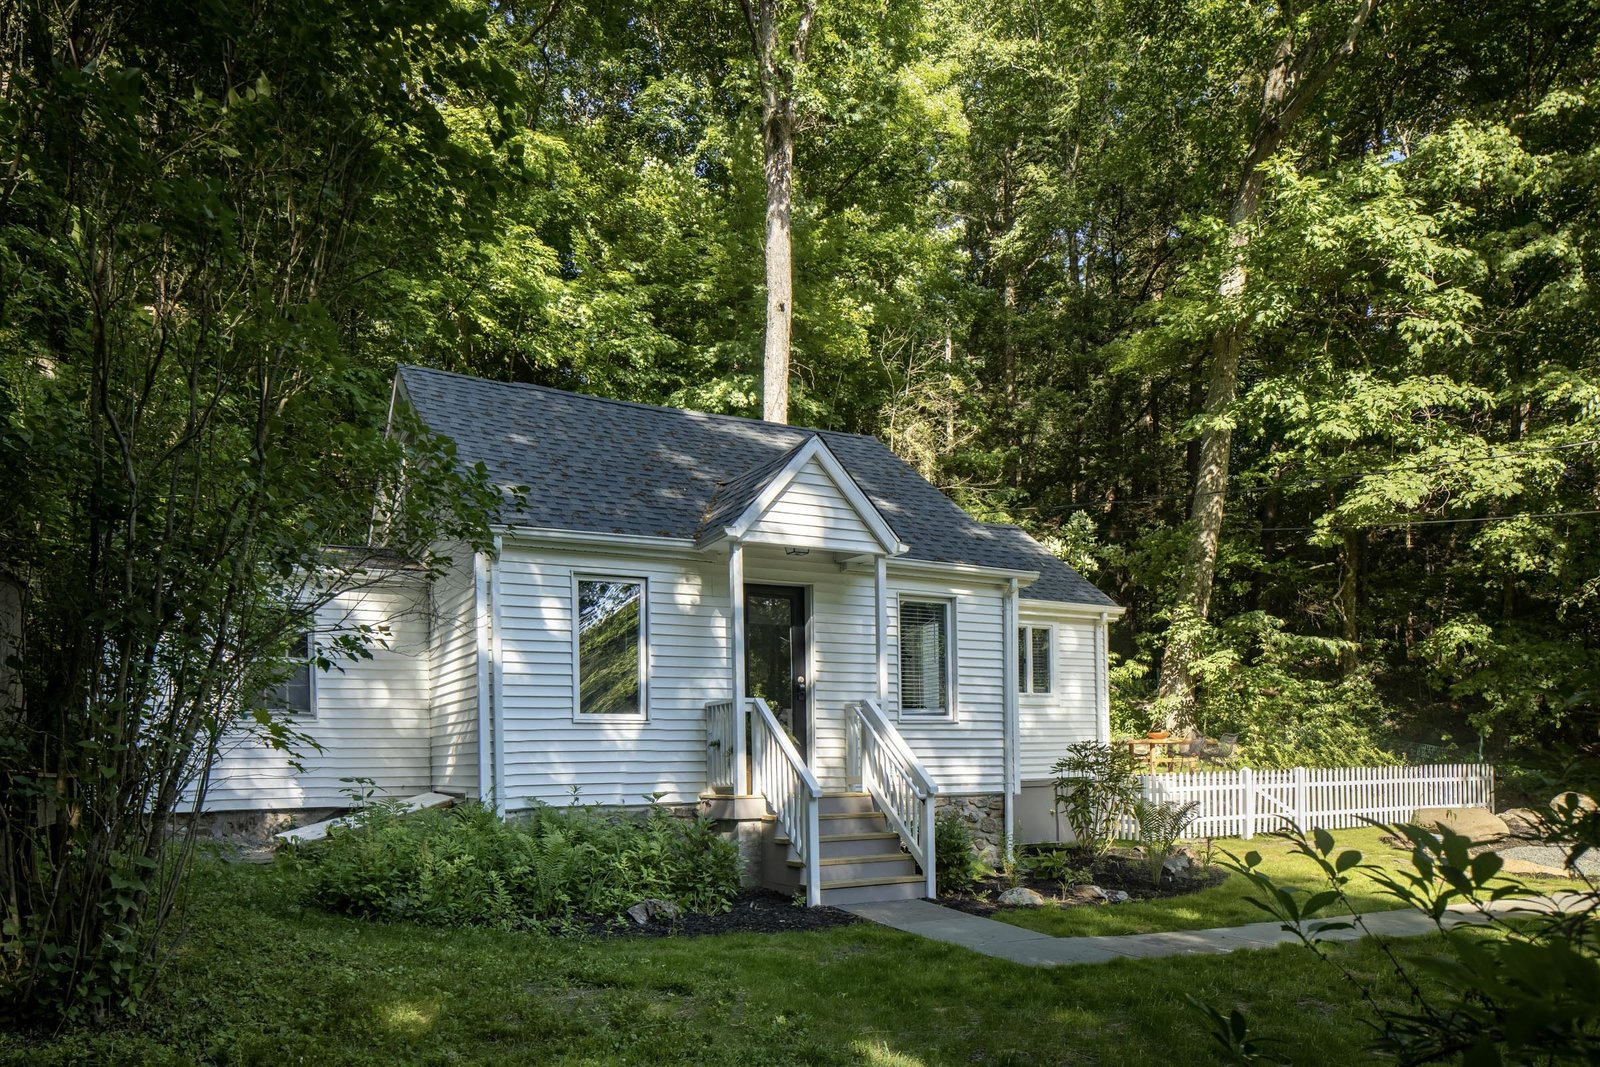 New England–style cottage exterior